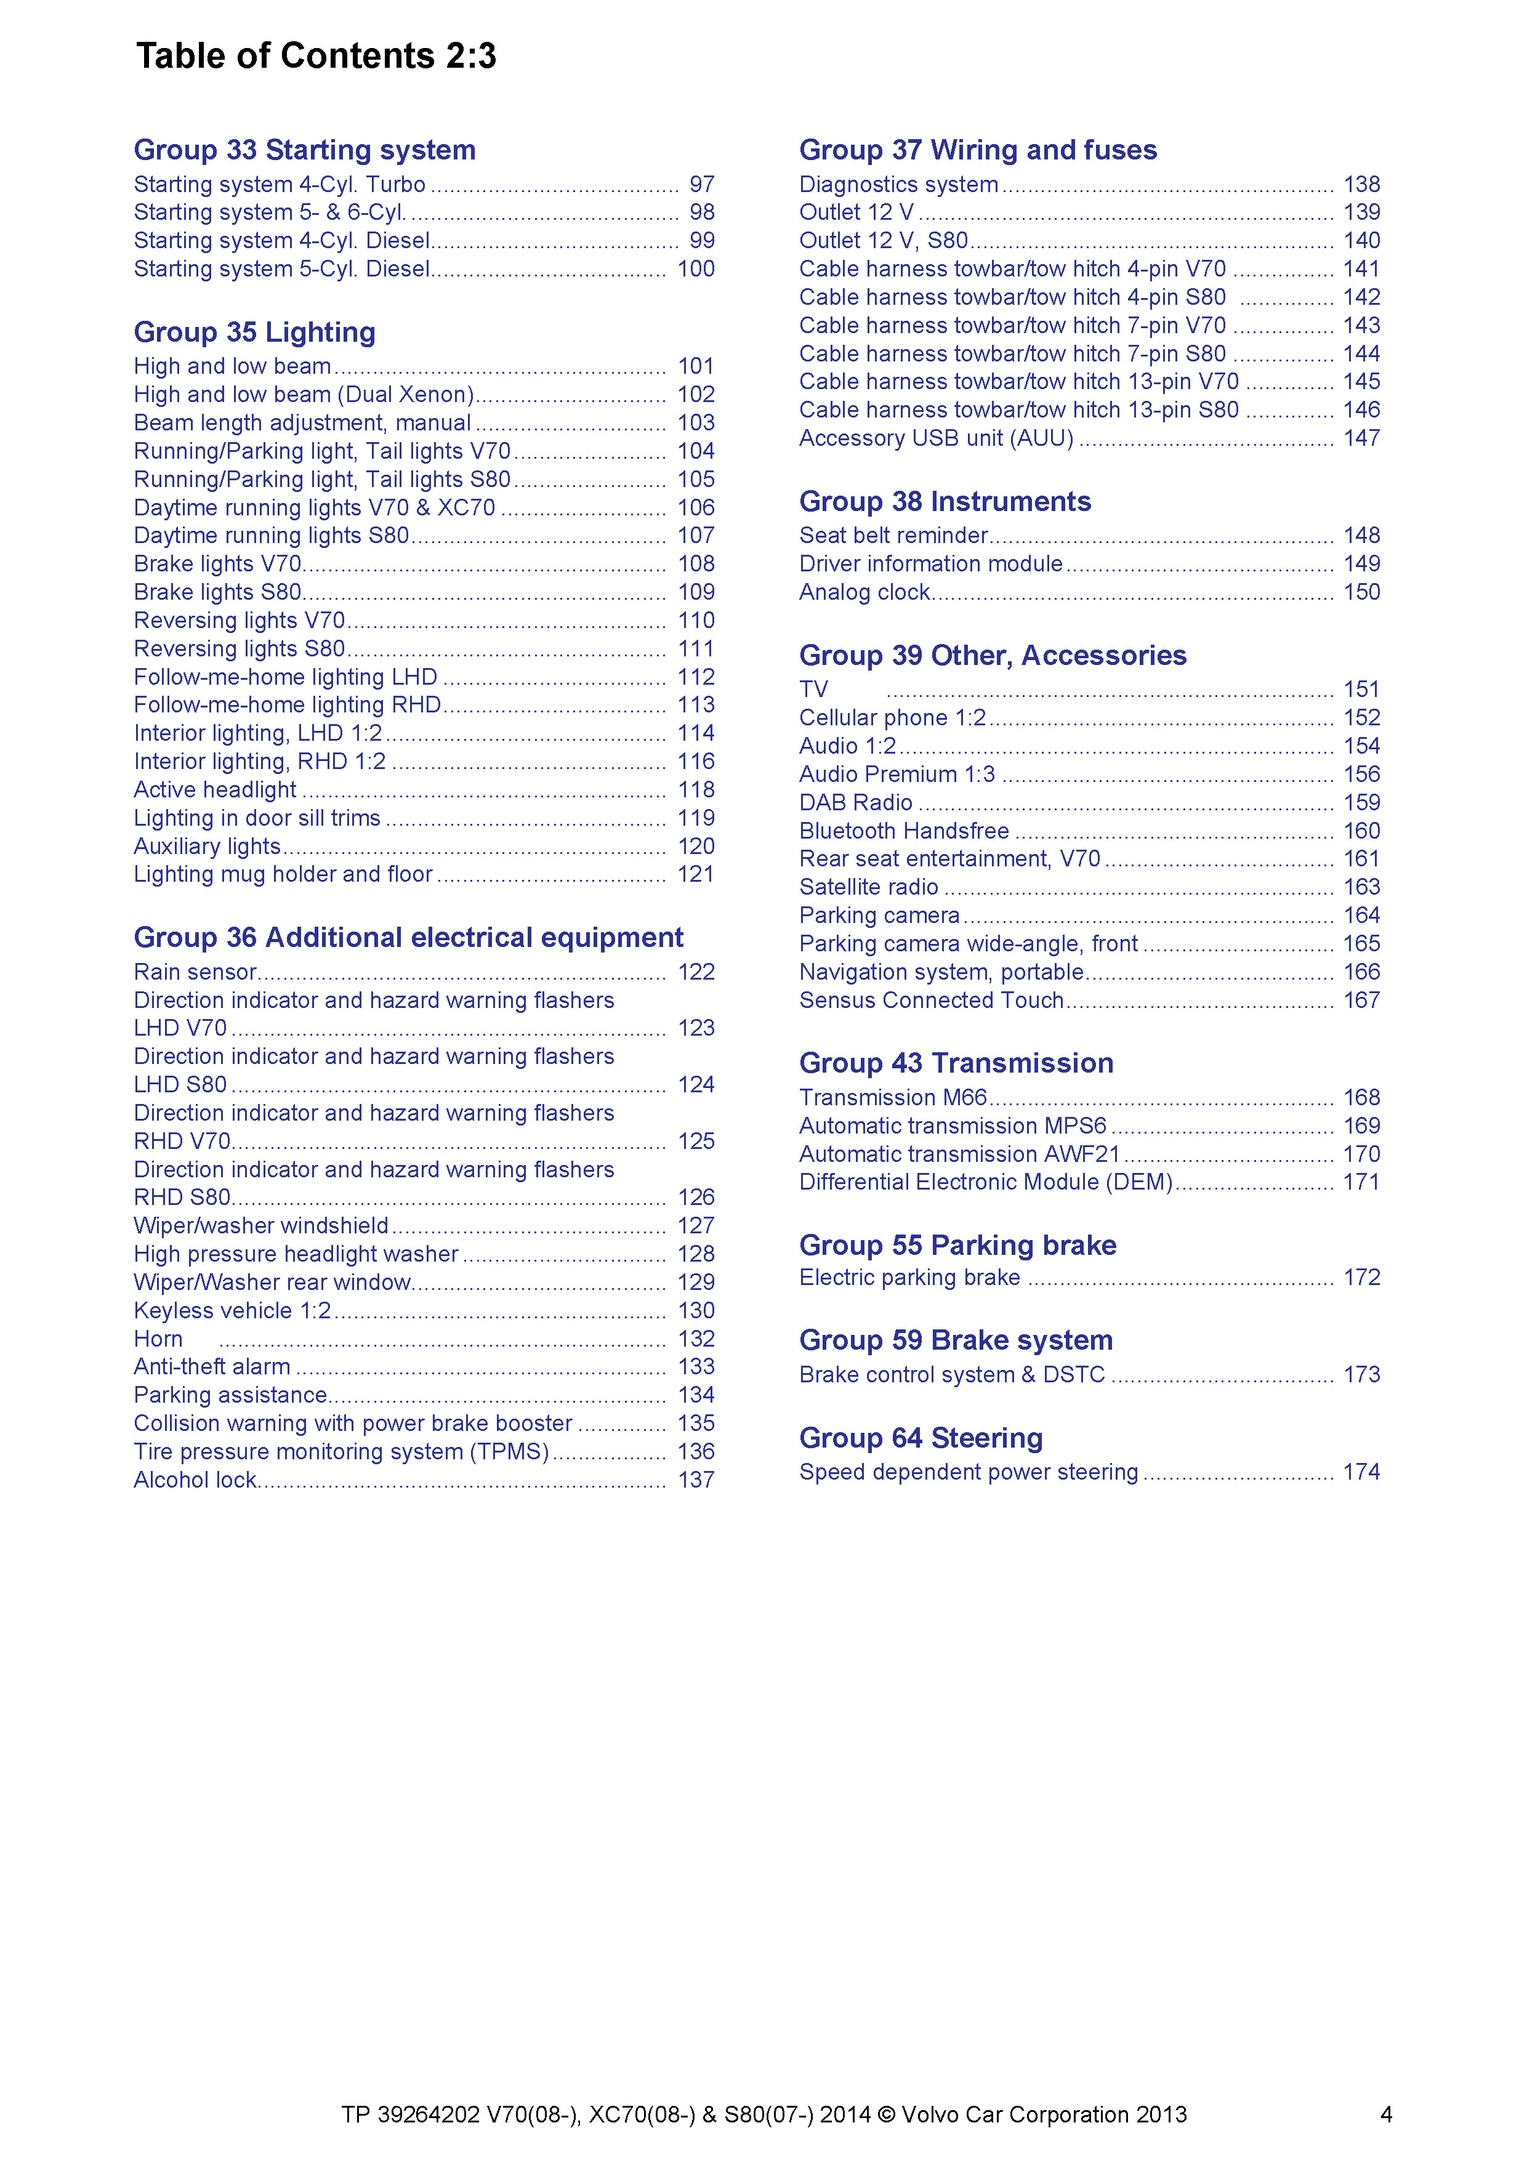 2008 2014 Volvo V70 Xc70 S80 Oem Electrical Wiring Diagram Sample Pages